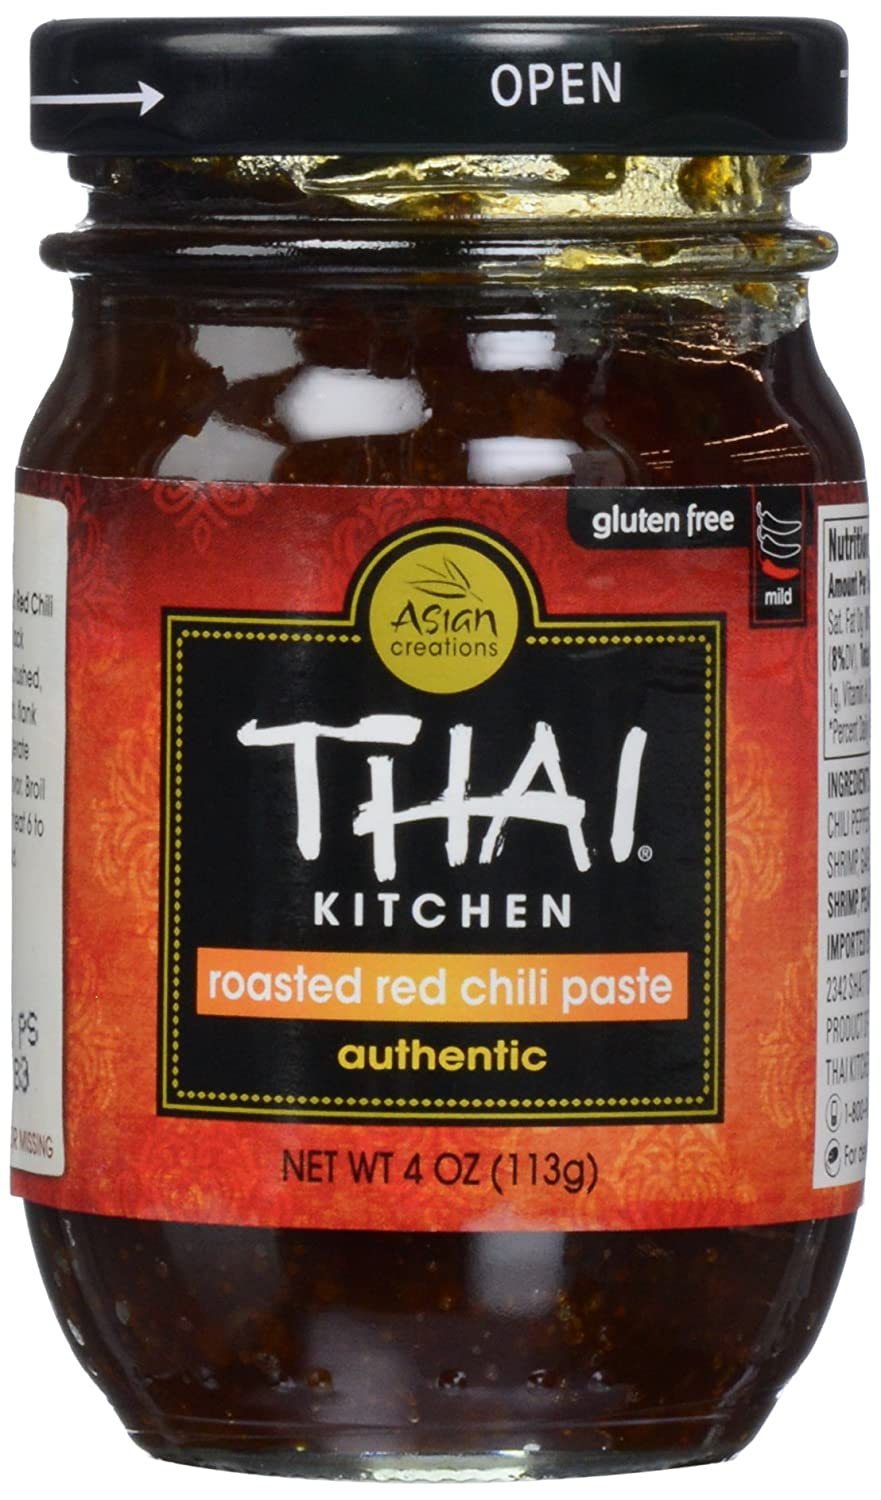 Thai Kitchen, Chili Paste, Roasted Red, 4 oz